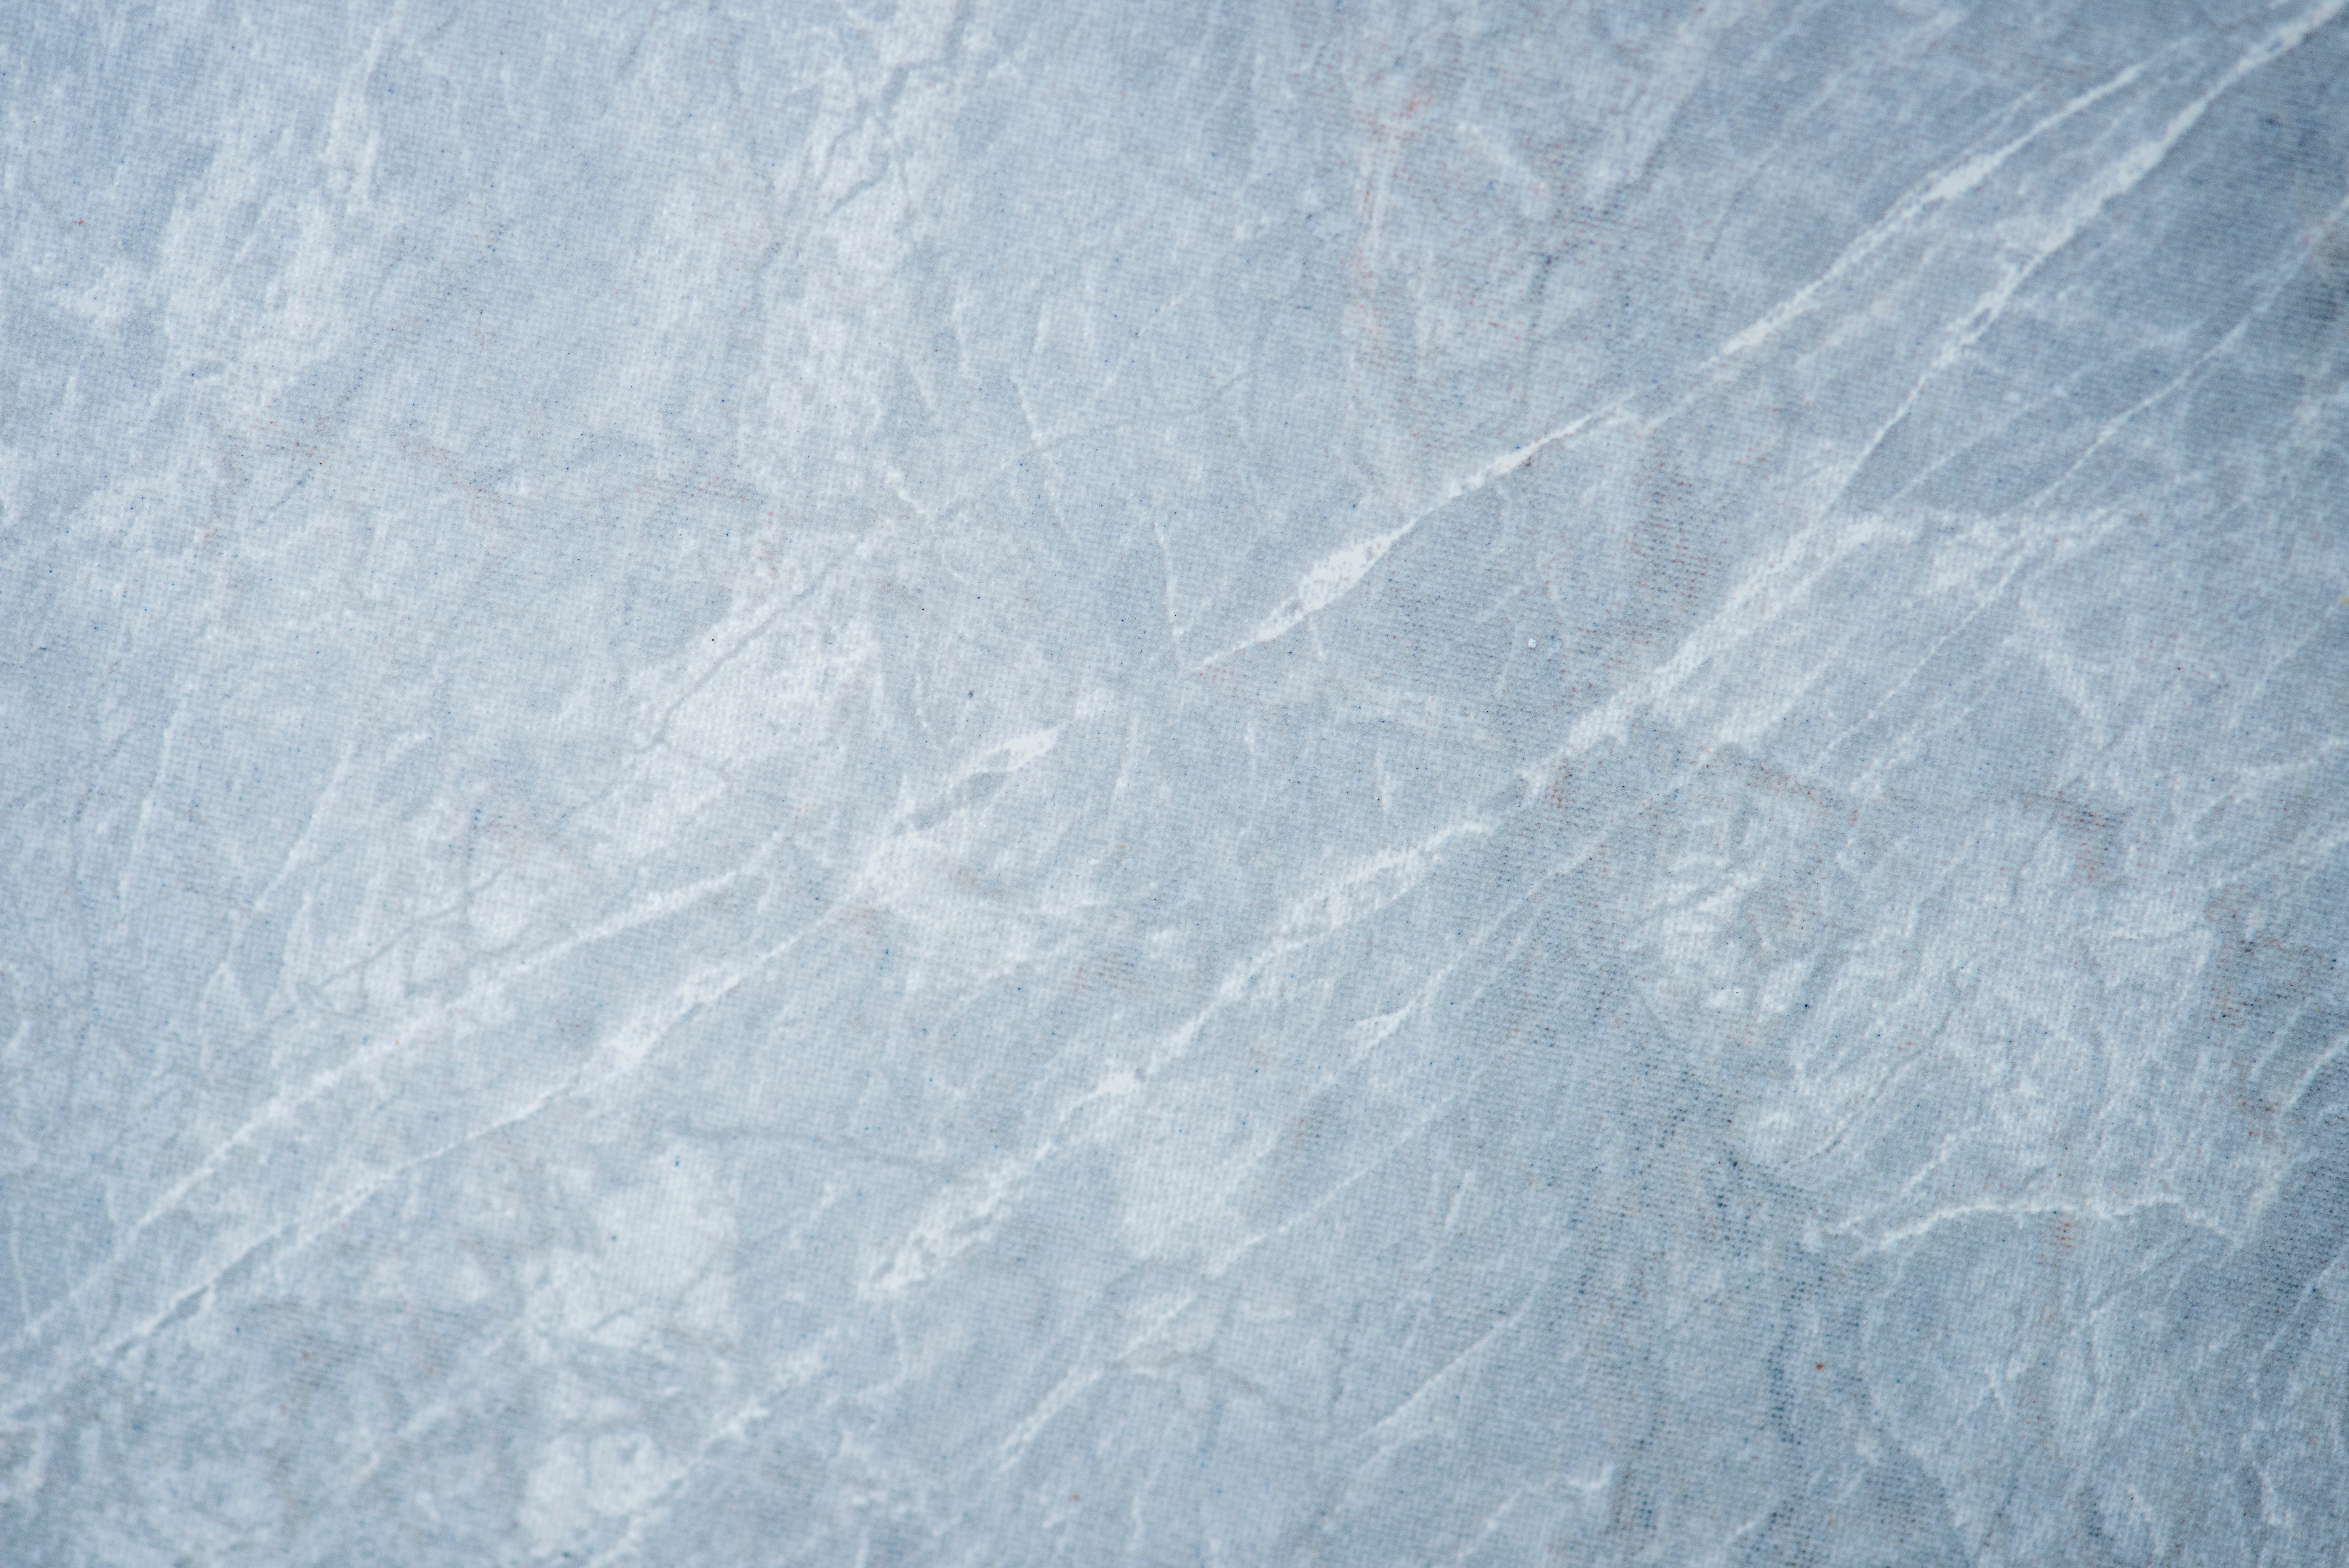 Gray Textile, Background, Design, Marble, Material, HQ Photo